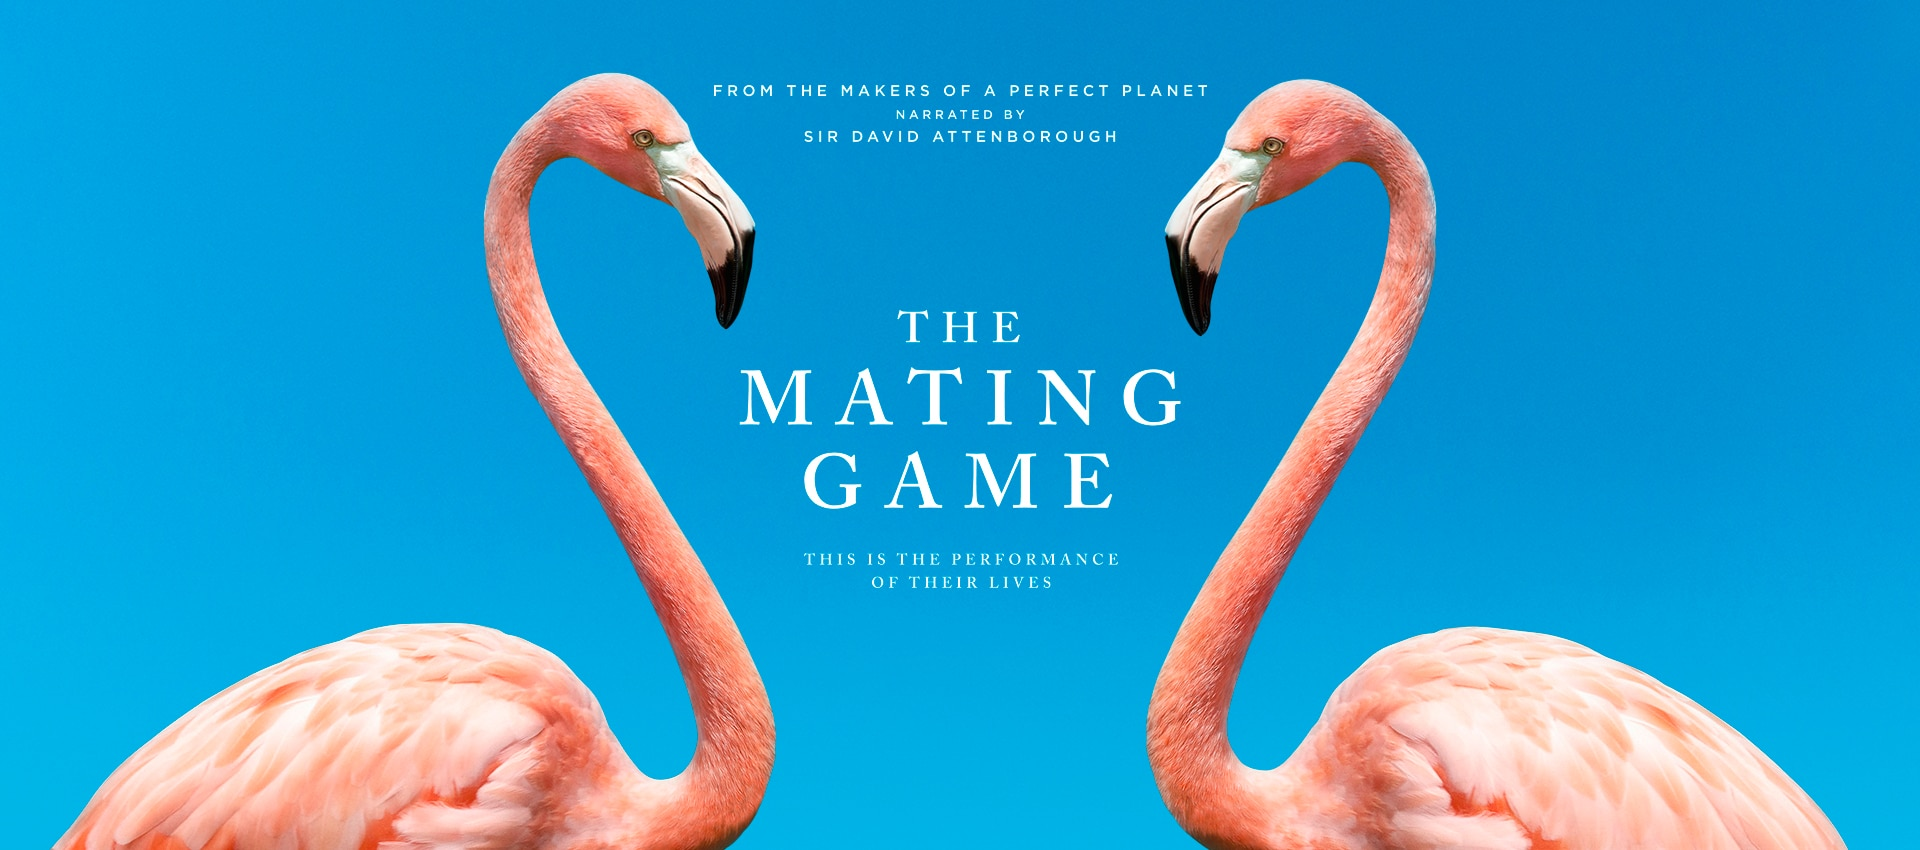 The Mating Game iconic